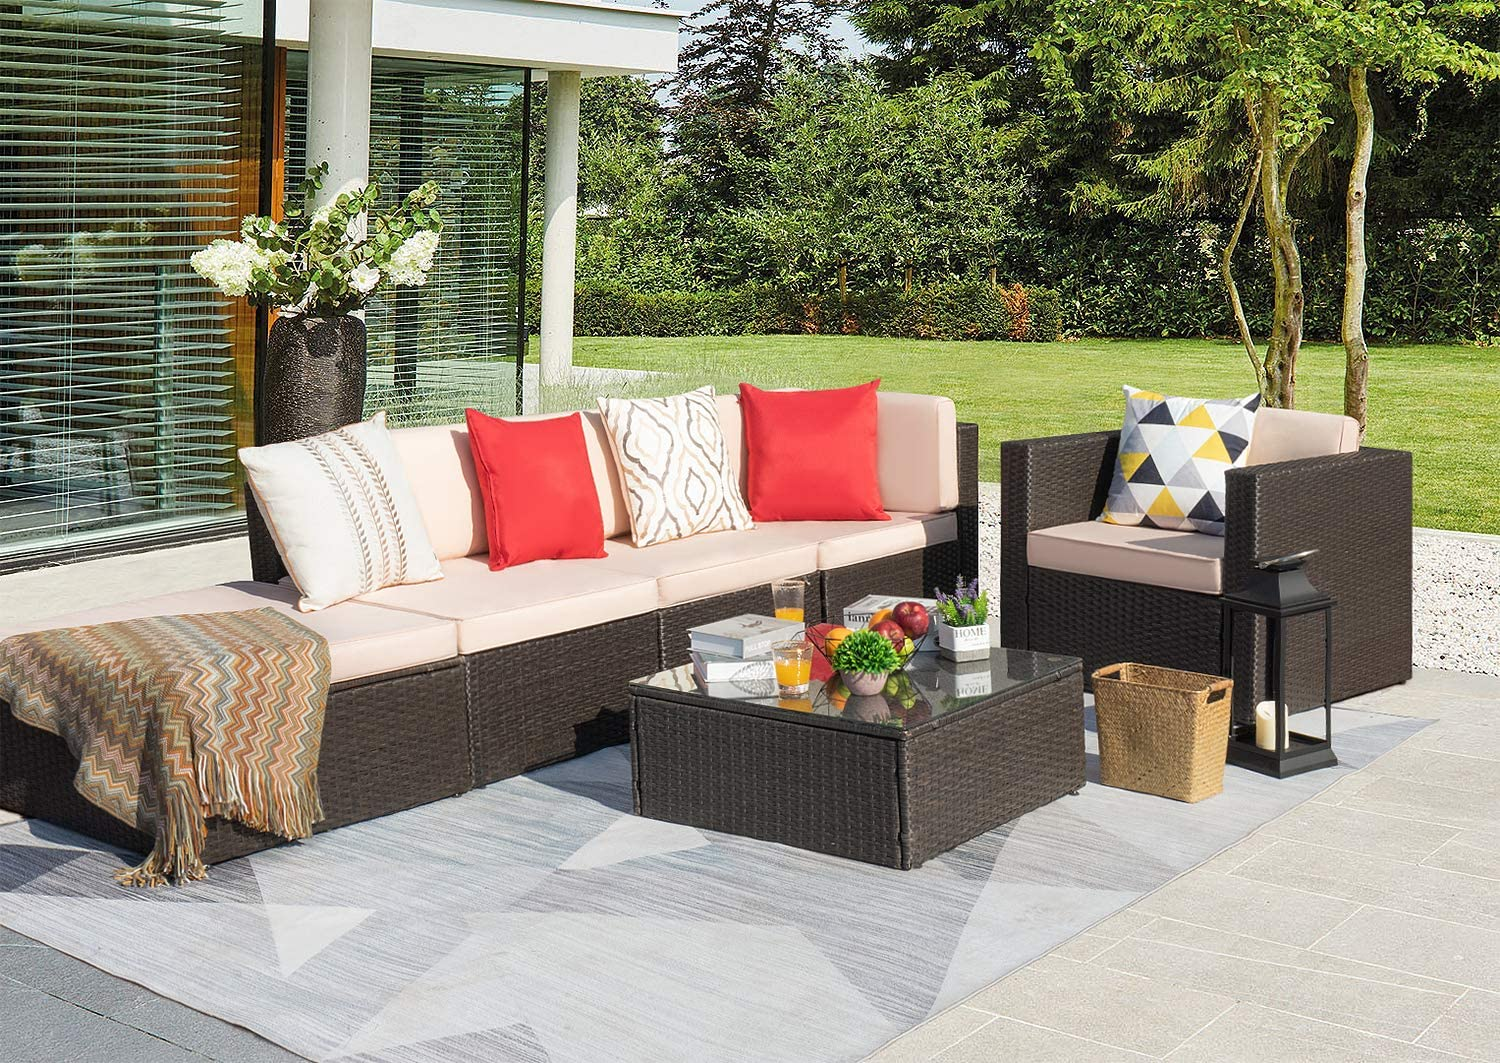 KaiMeng 6 Pieces Outdoor Patio Furniture Sets Black Brown Sectional Wicker Sofa Lawn Rattan Conversation Set with Seat Cushions